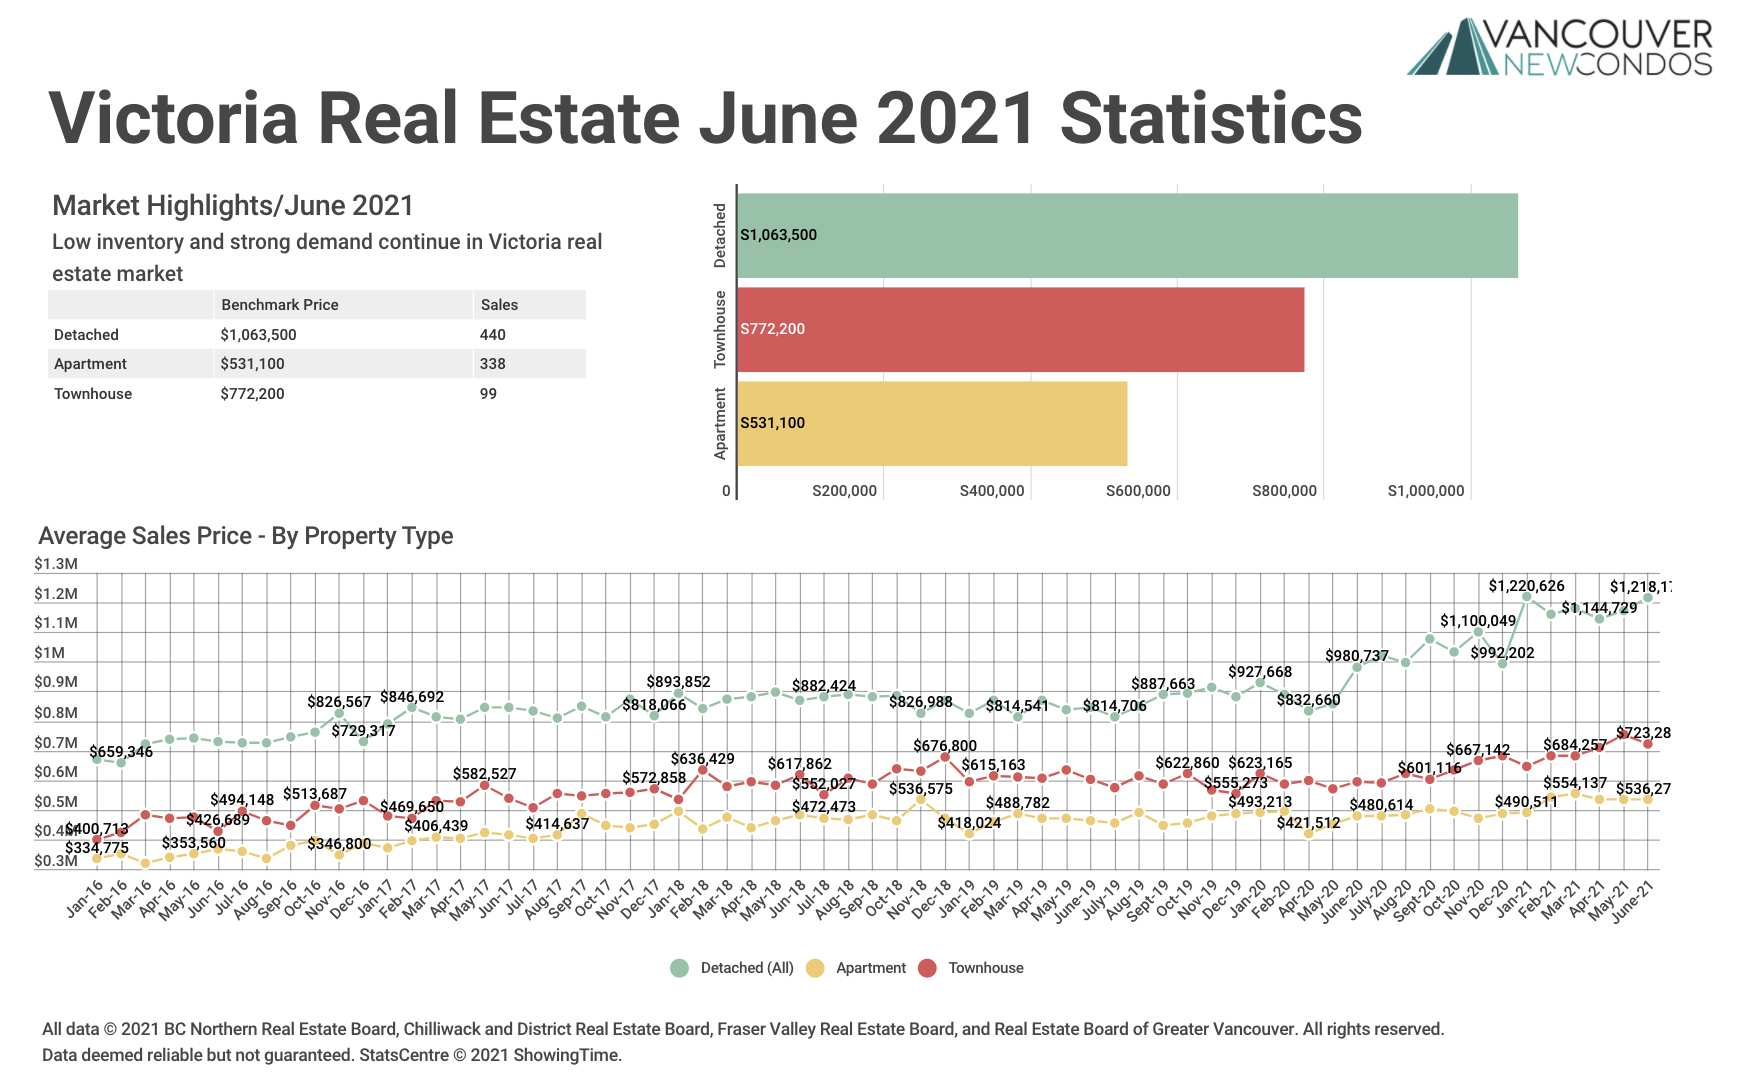 VREB June 21 Stats Graph